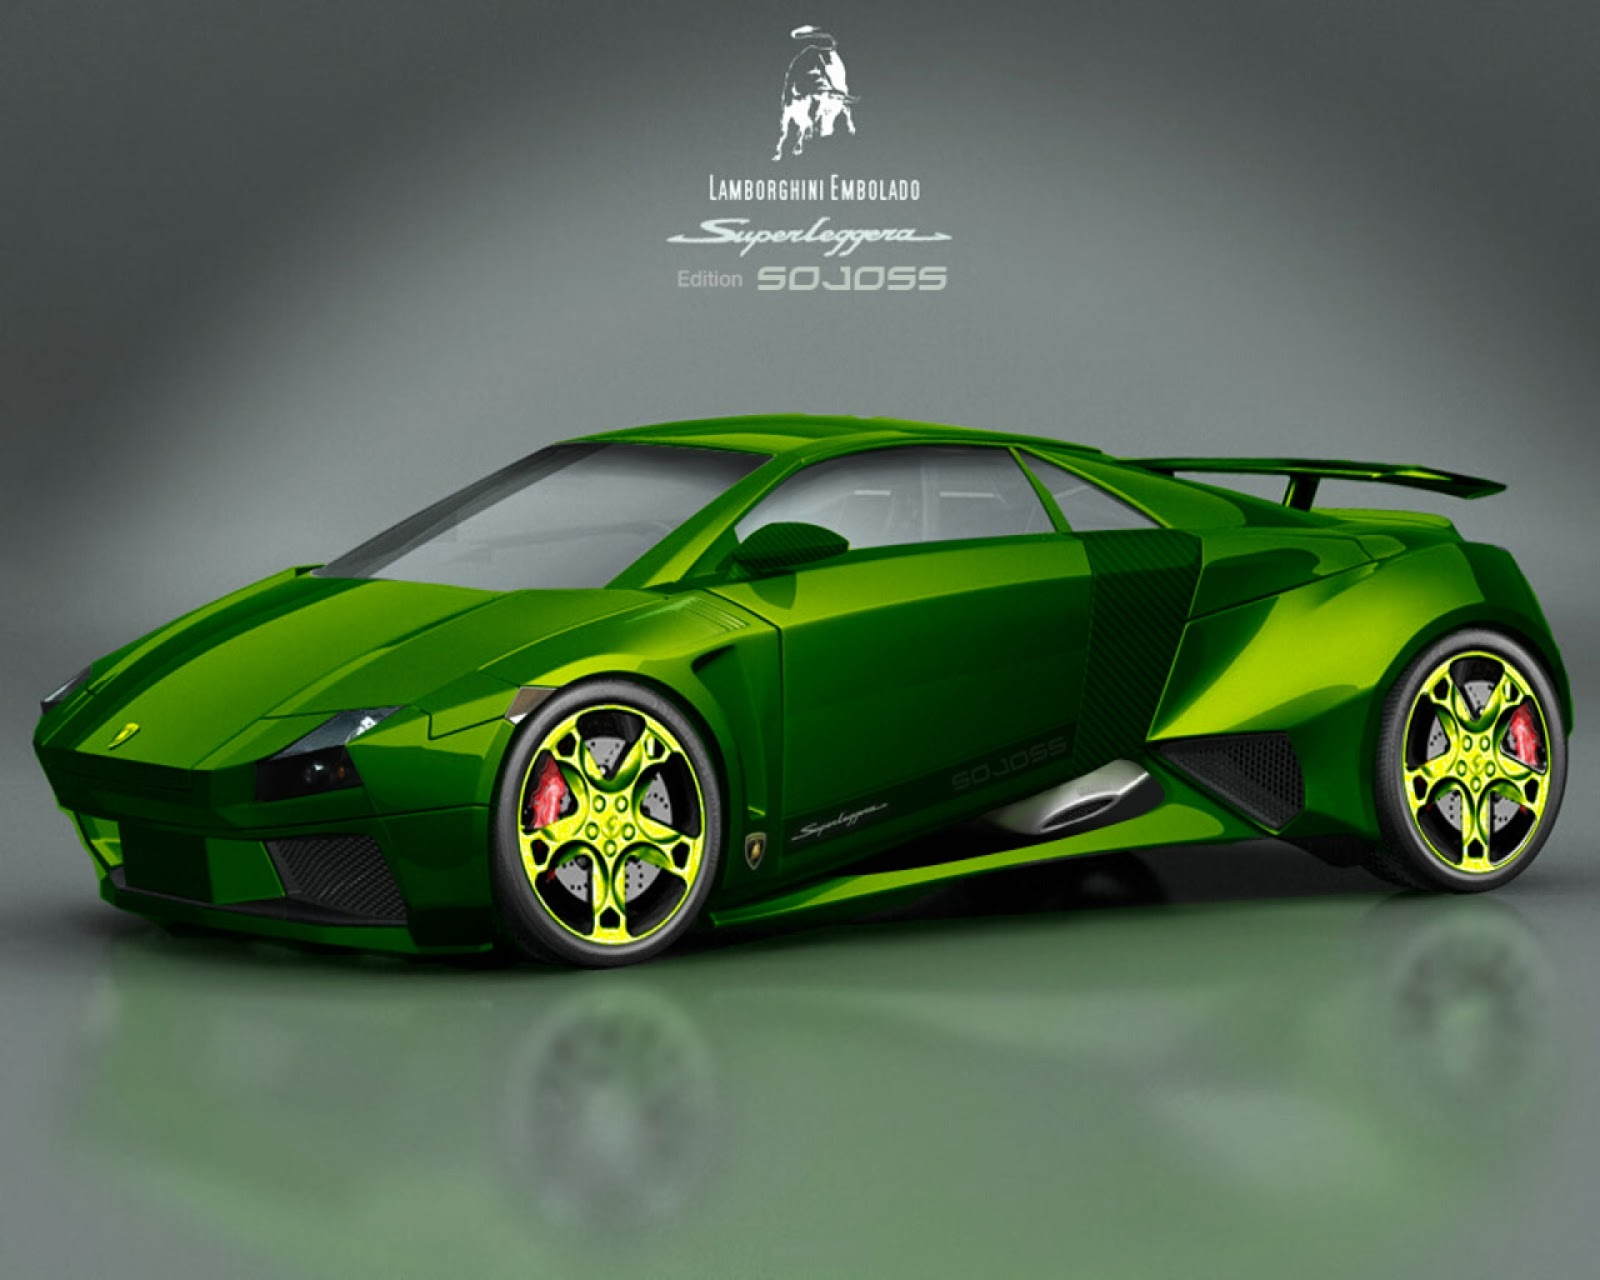 World Of Cars Lamborghini Embolado